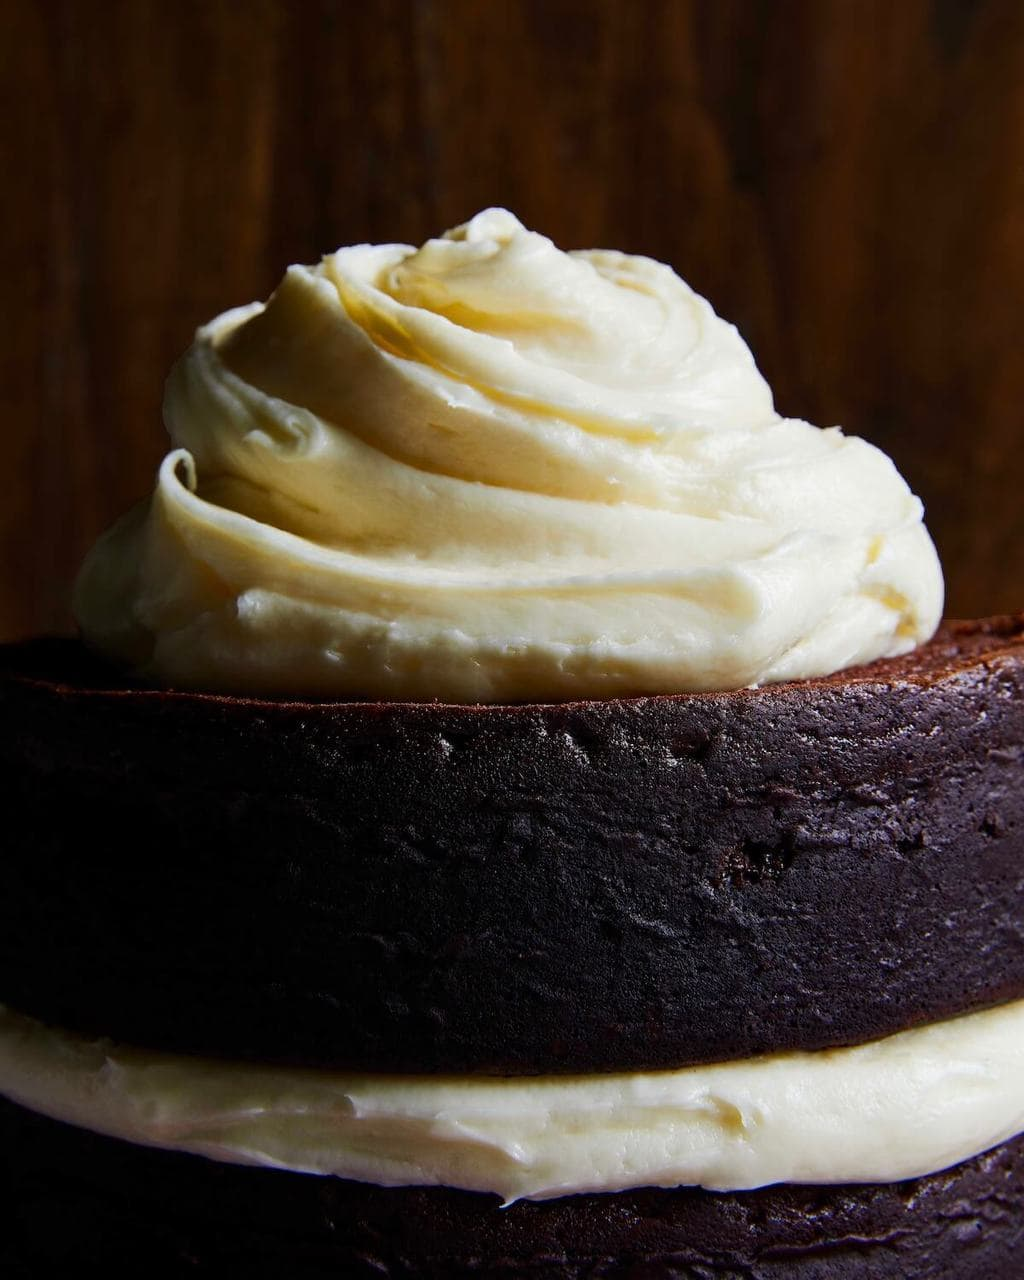 White cream cheese frosting on top of dark chocolate cake rounds